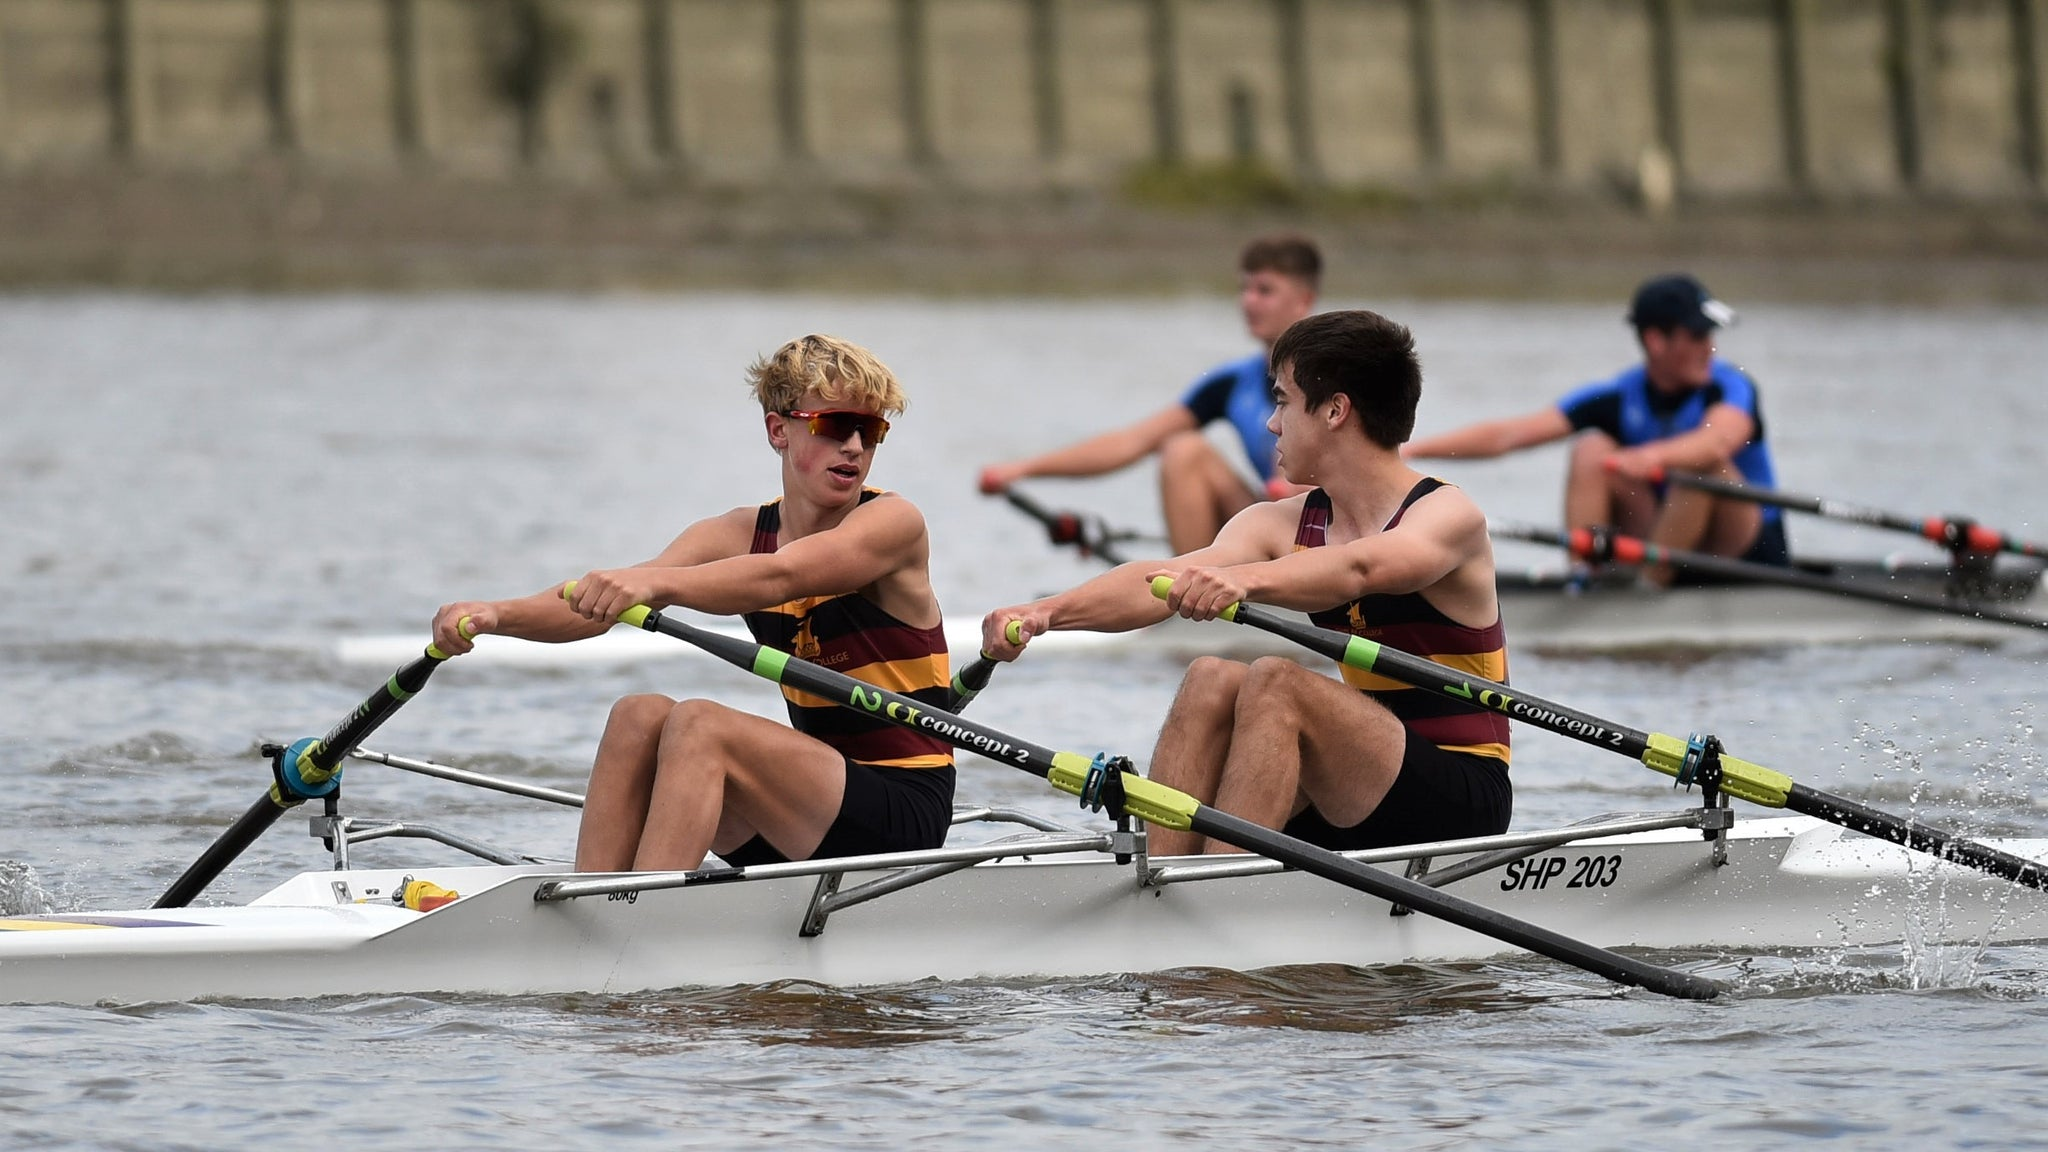 Vesta Scullers' Head 2019: Junior Men